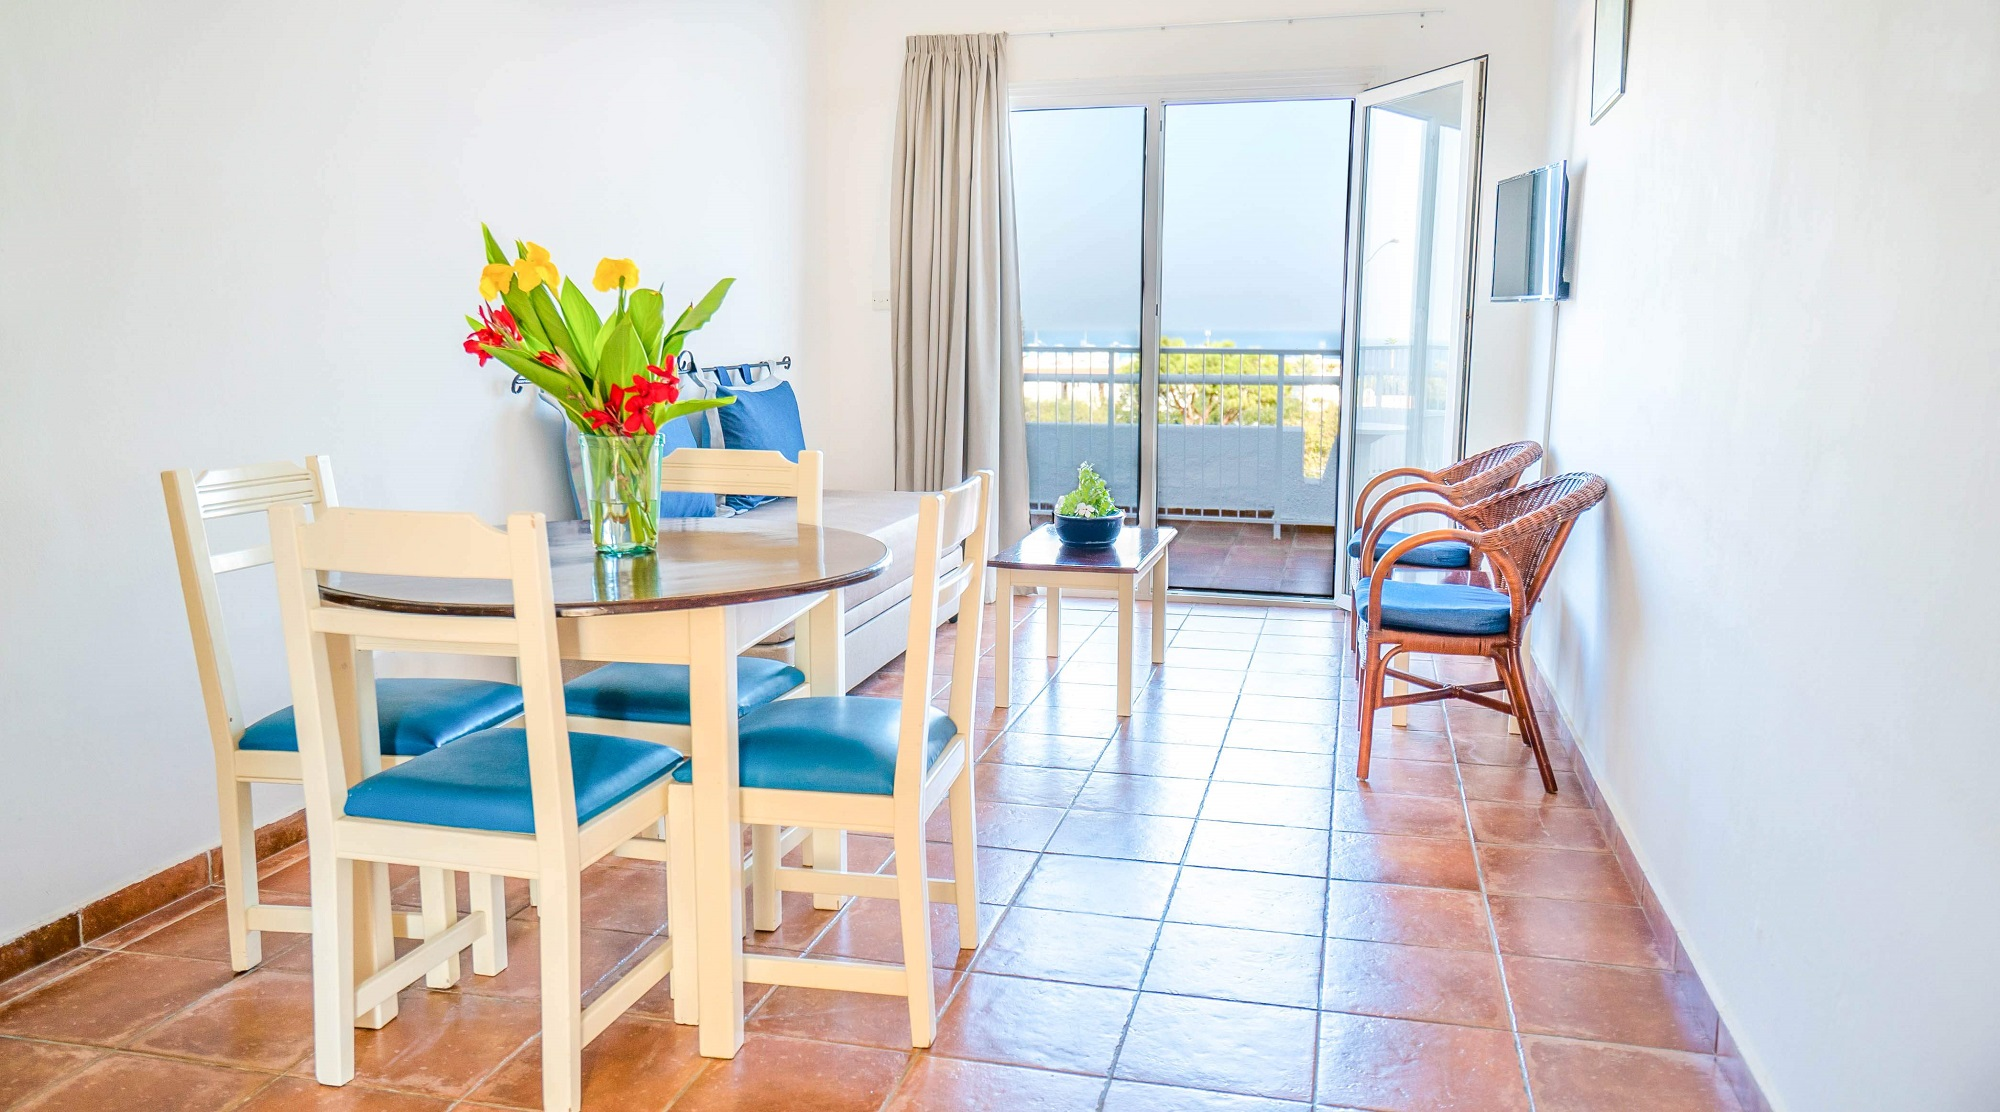 Living room and balcony view on Andreotis Apartments Protaras